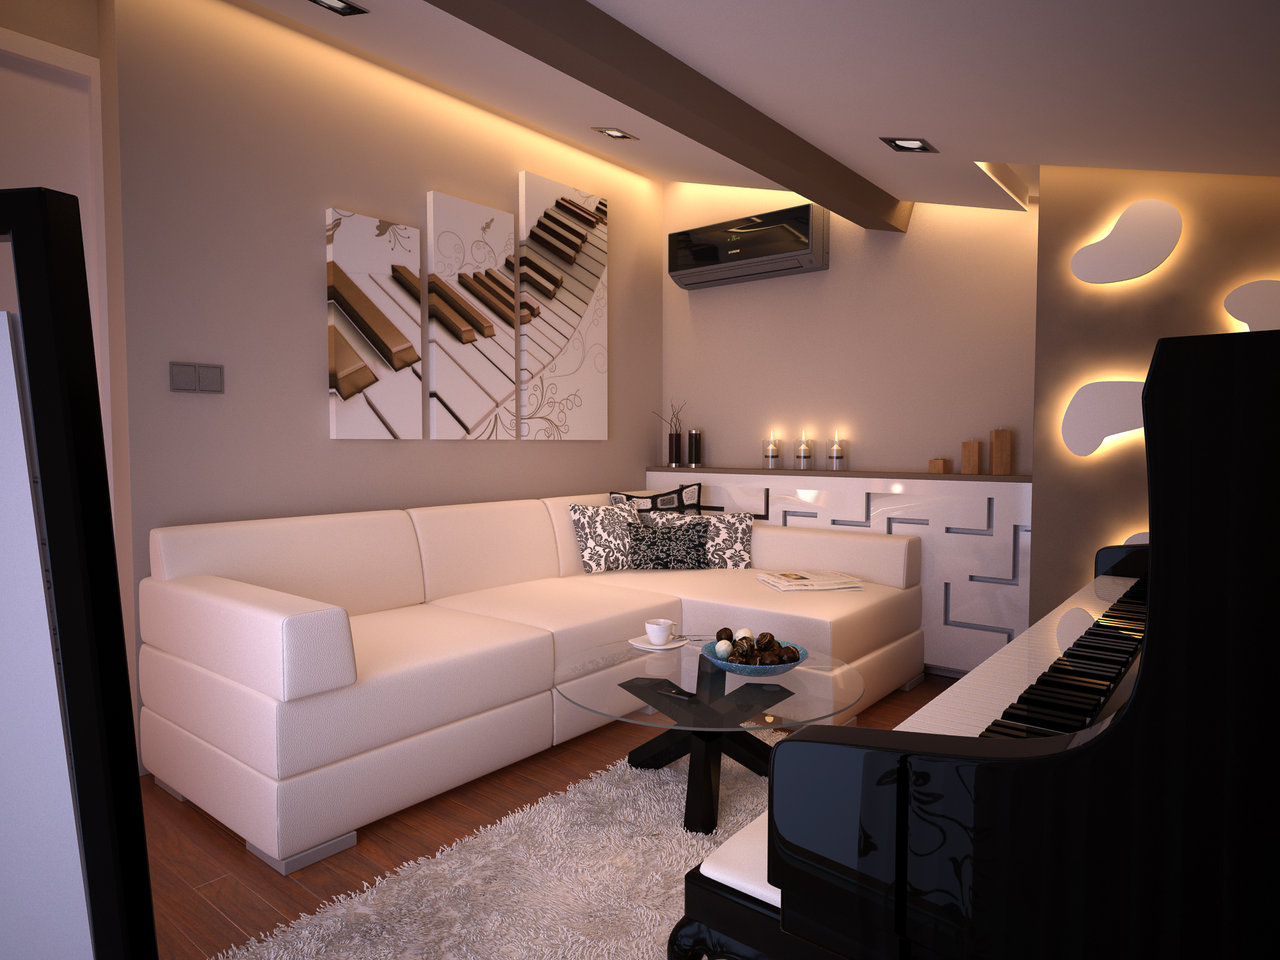 Original Interior Musical Design Ideas. Wall painting and musical instrument in the room